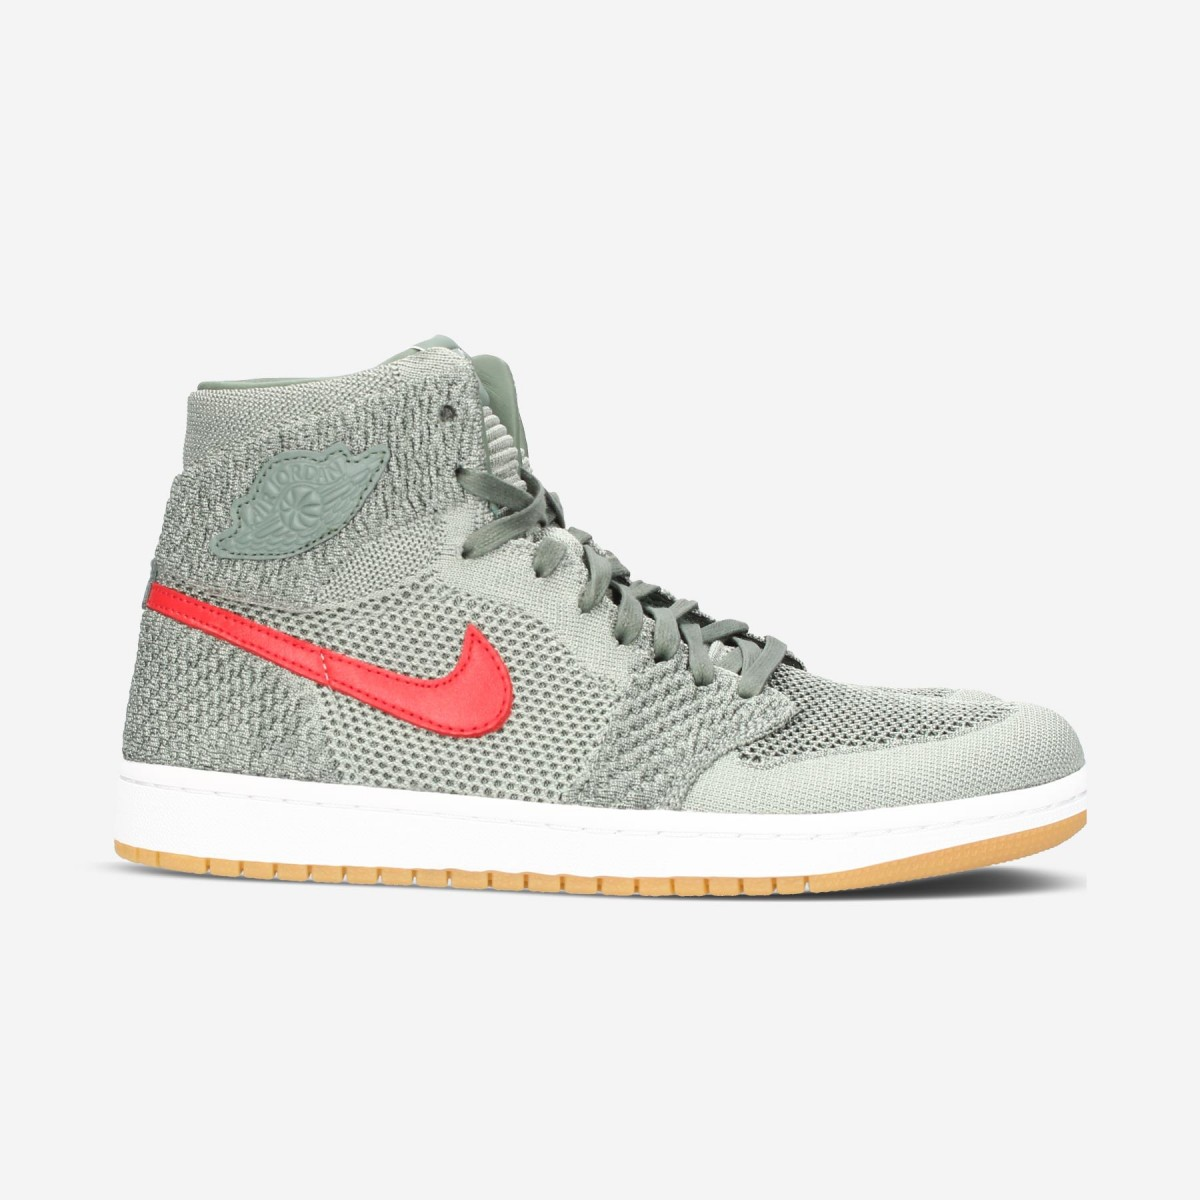 sneakers for cheap 3c2be 570e1 Air Jordan 1 Retro High Flyknit